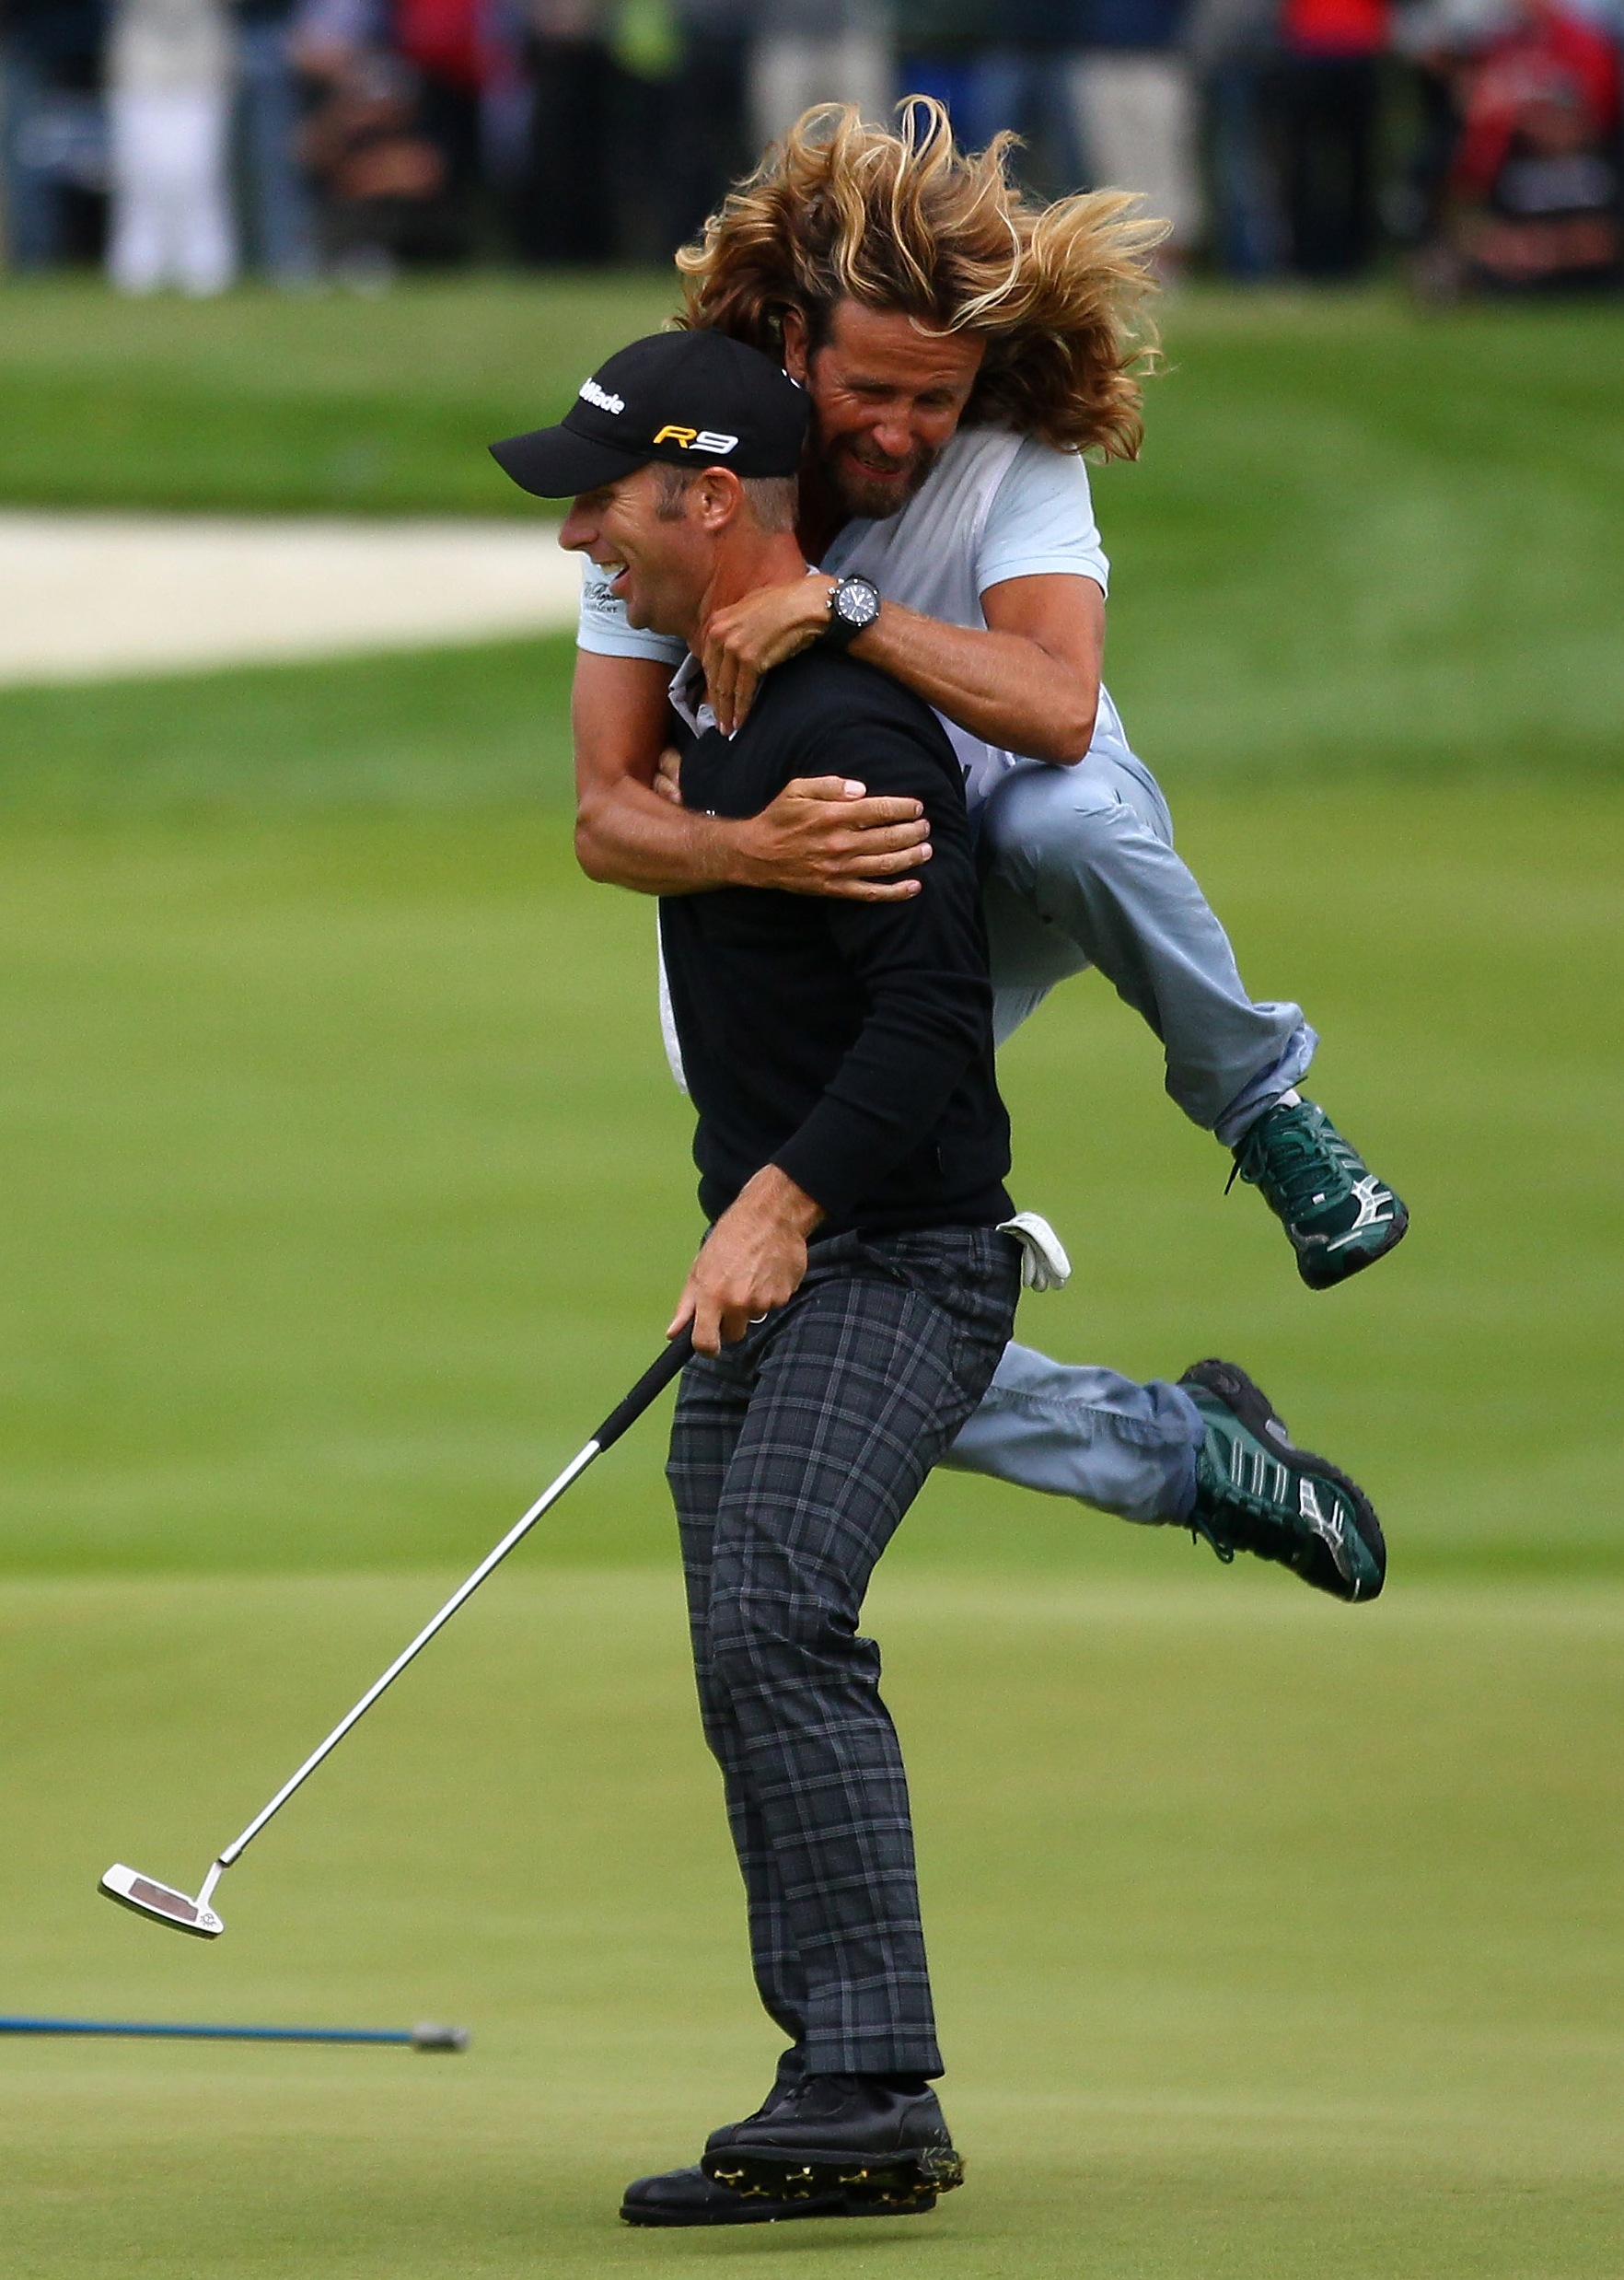 Richard S. Johnson celebrates with his caddie after winning the Scandinavian Masters.